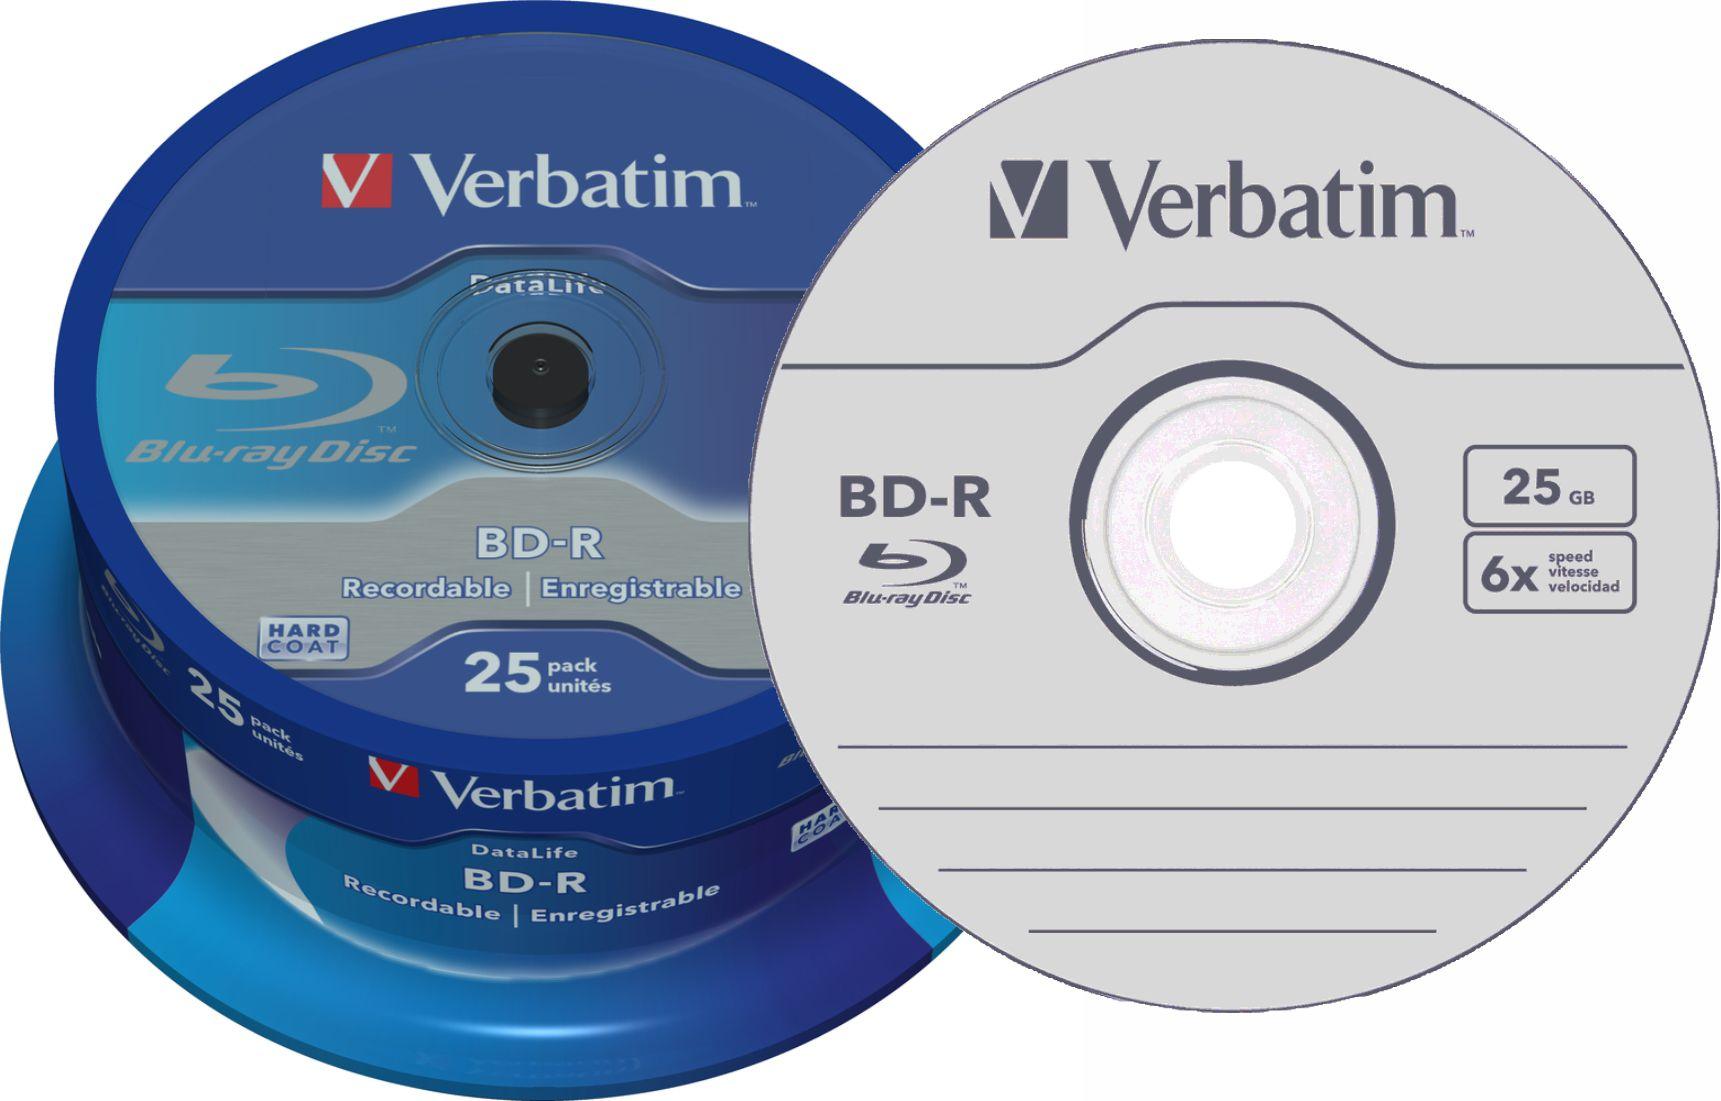 Item BD-R Blu-Ray 25GB x6 25 PCs Verbatim